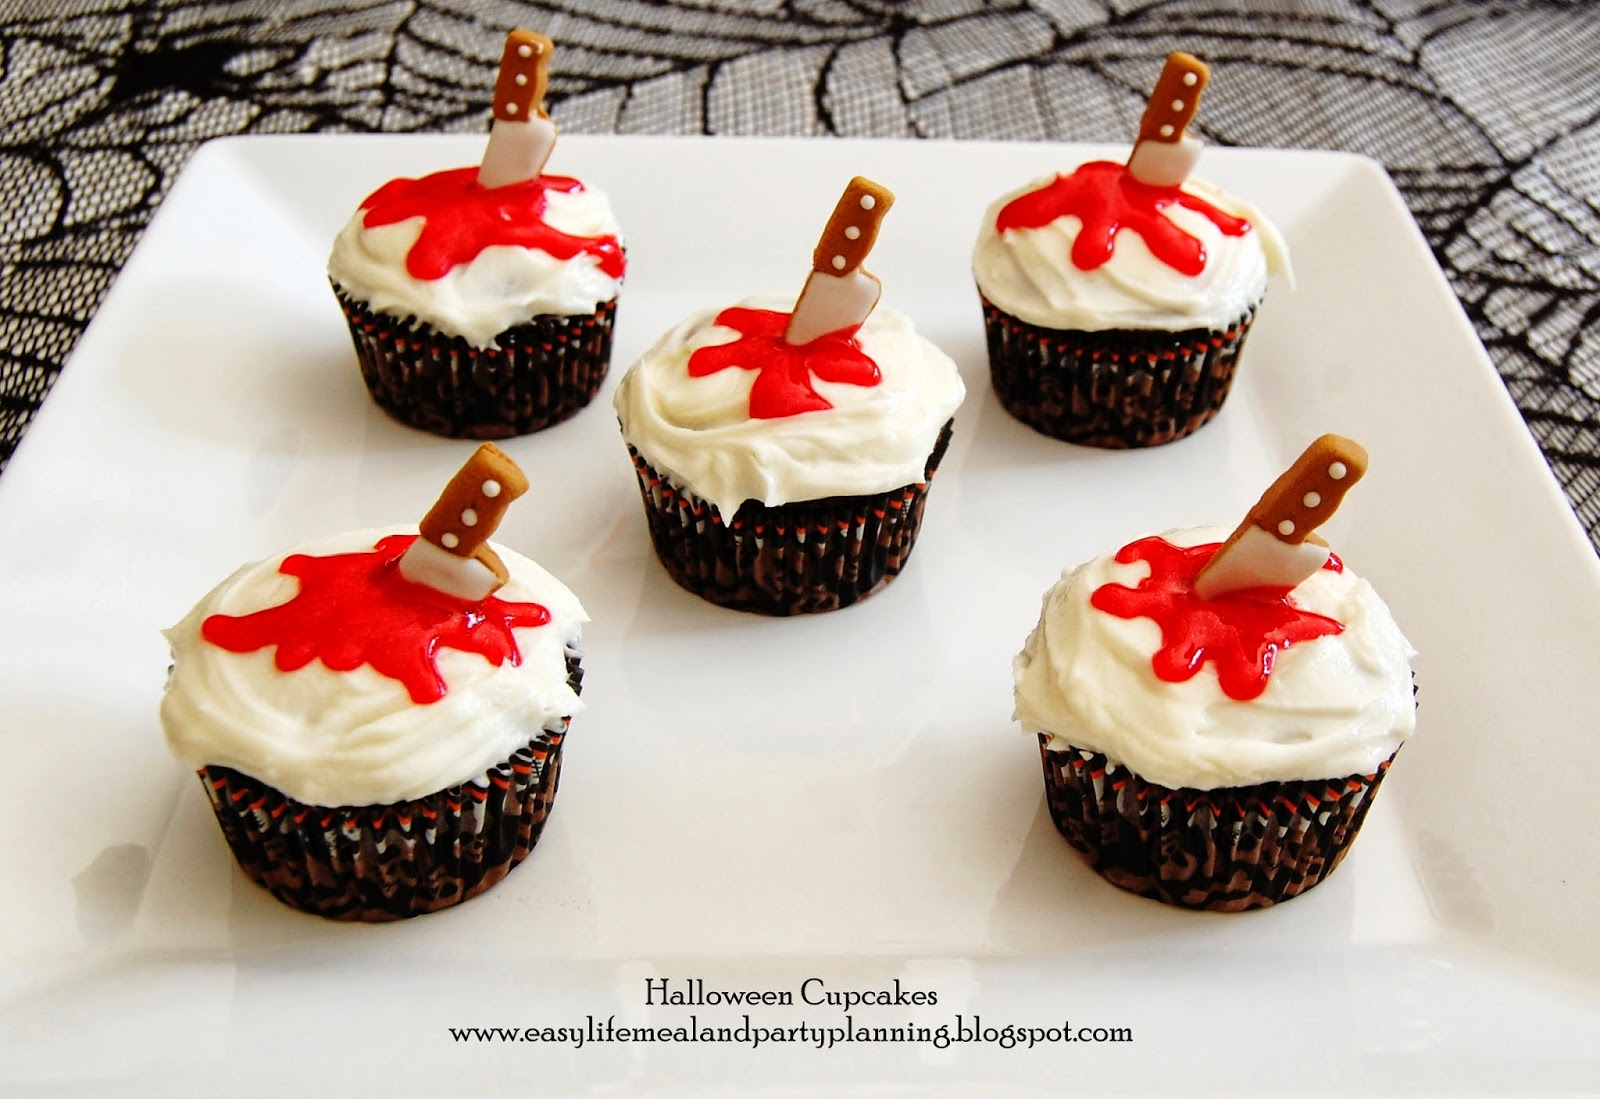 cupcake toppers easy life meal and party planning - Halloween Decorations Cupcakes